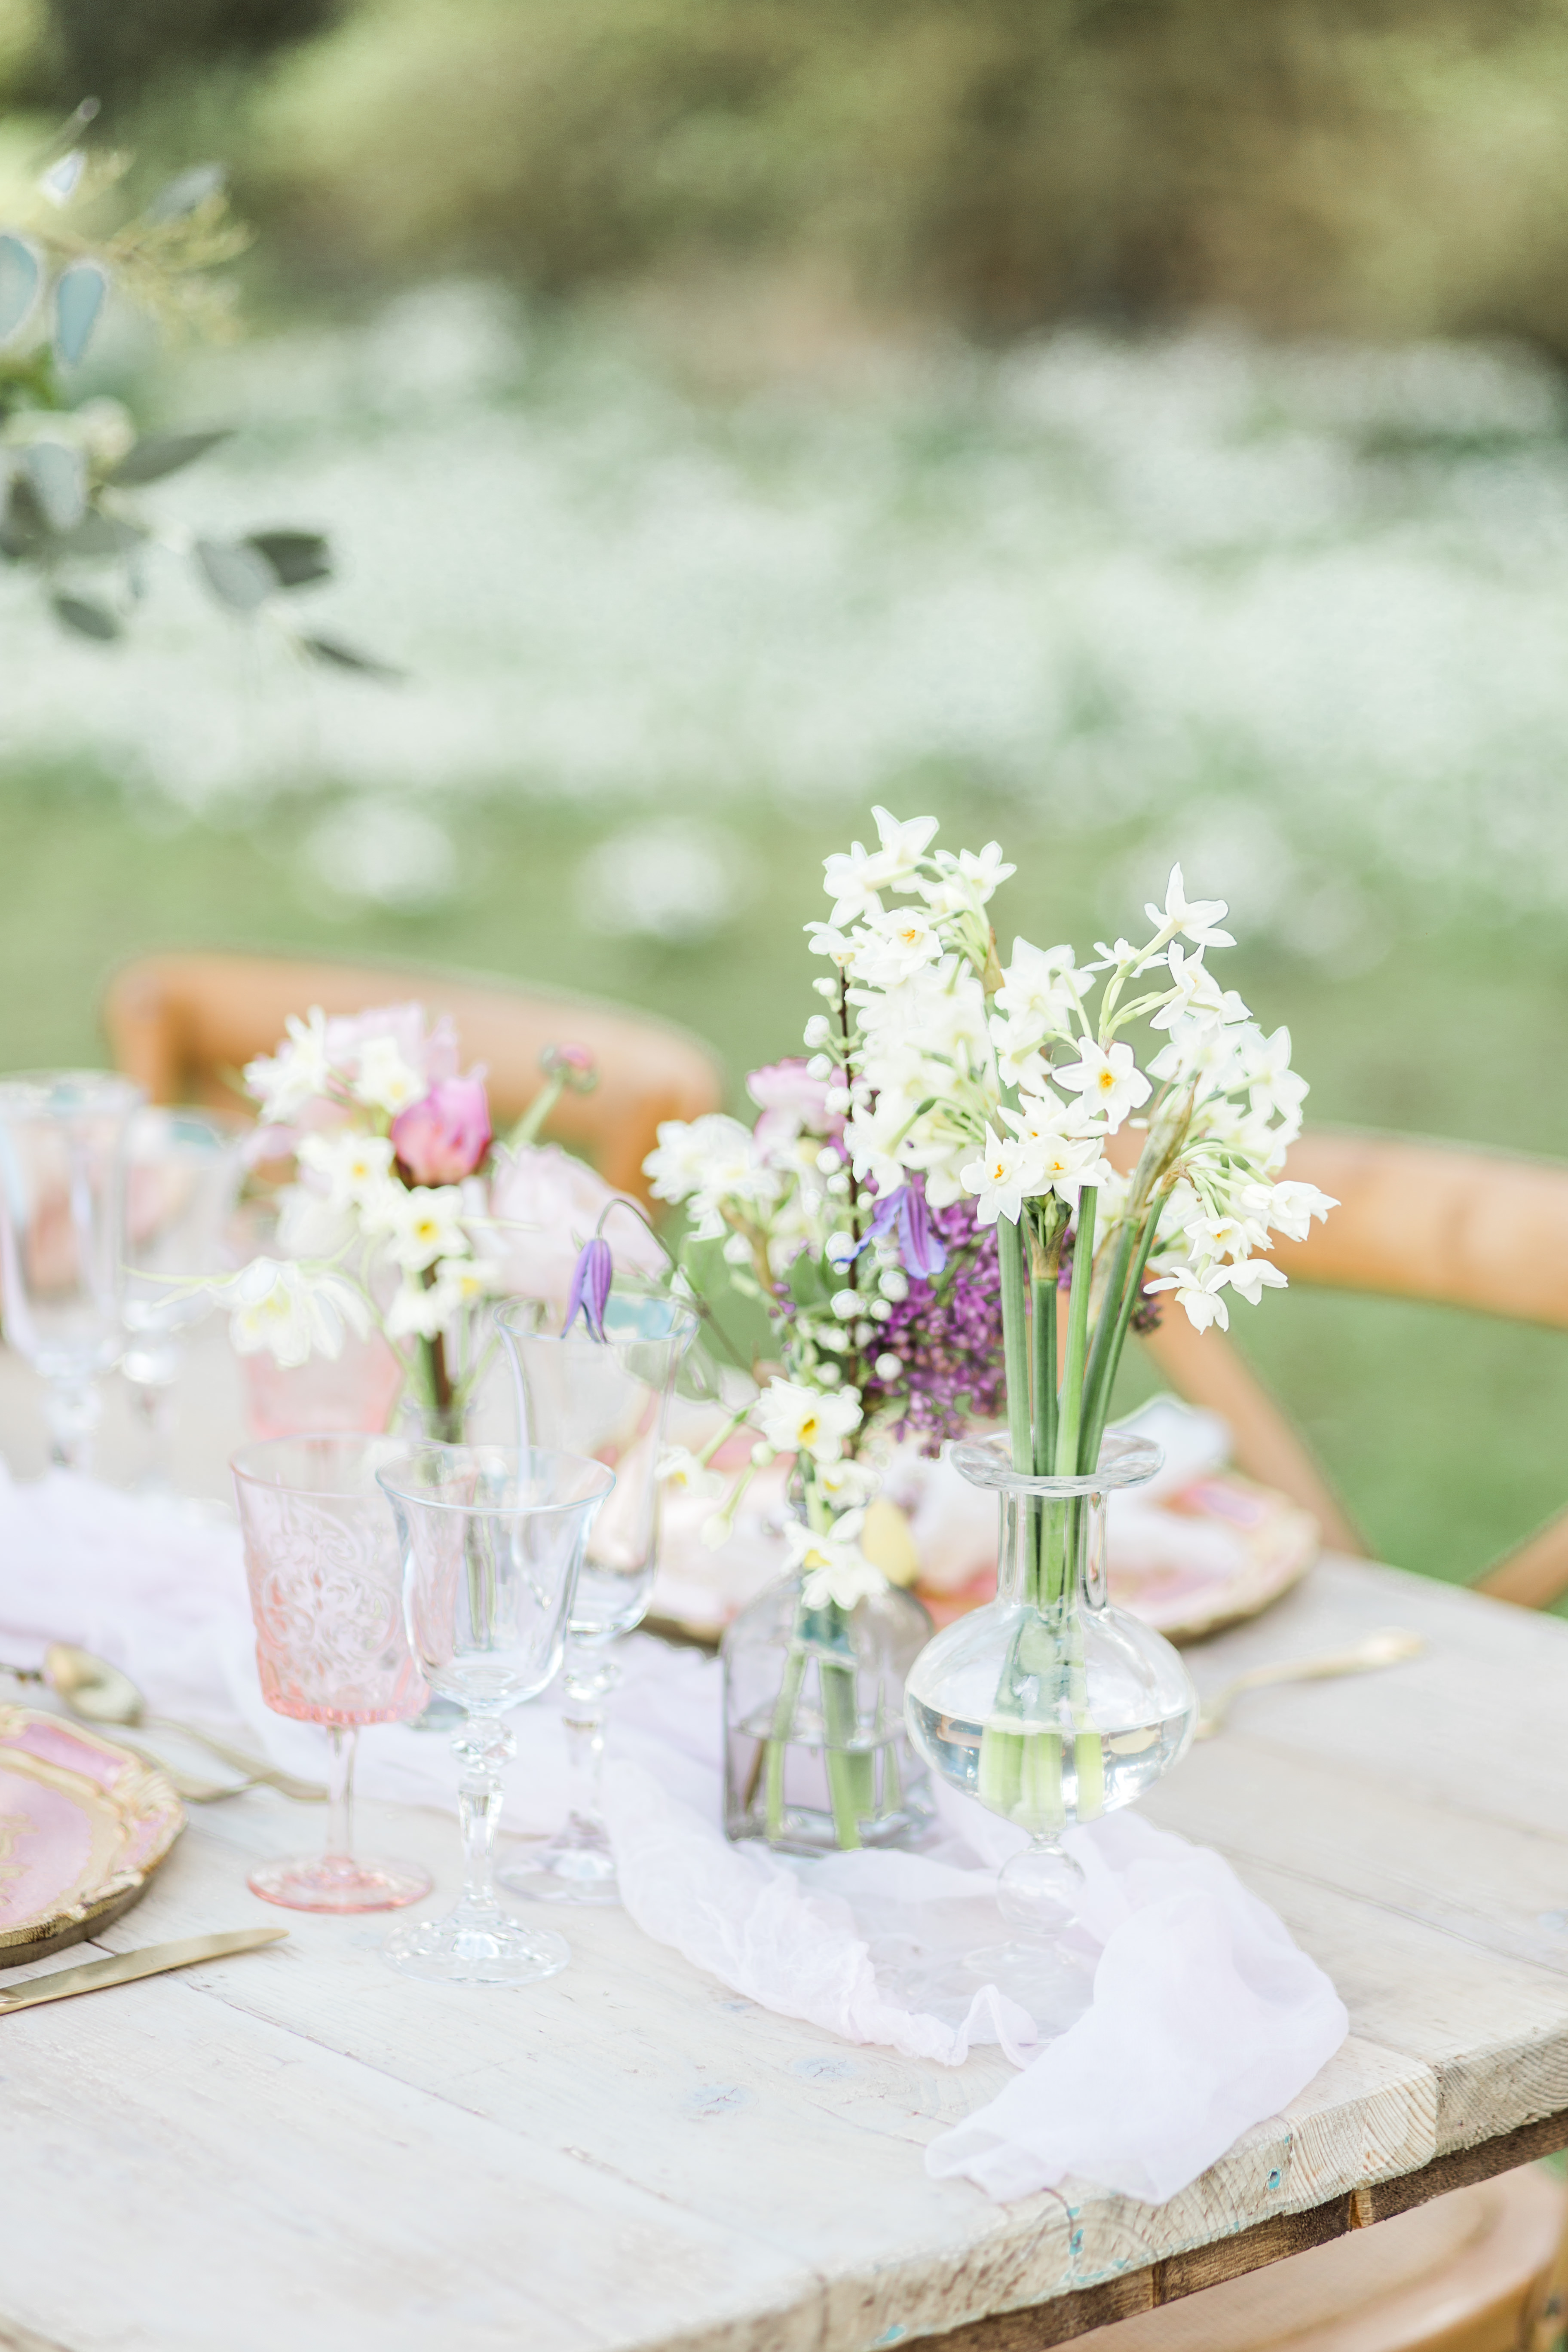 Clustered Centerpieces in Clear Vases with White and Purple Flowers